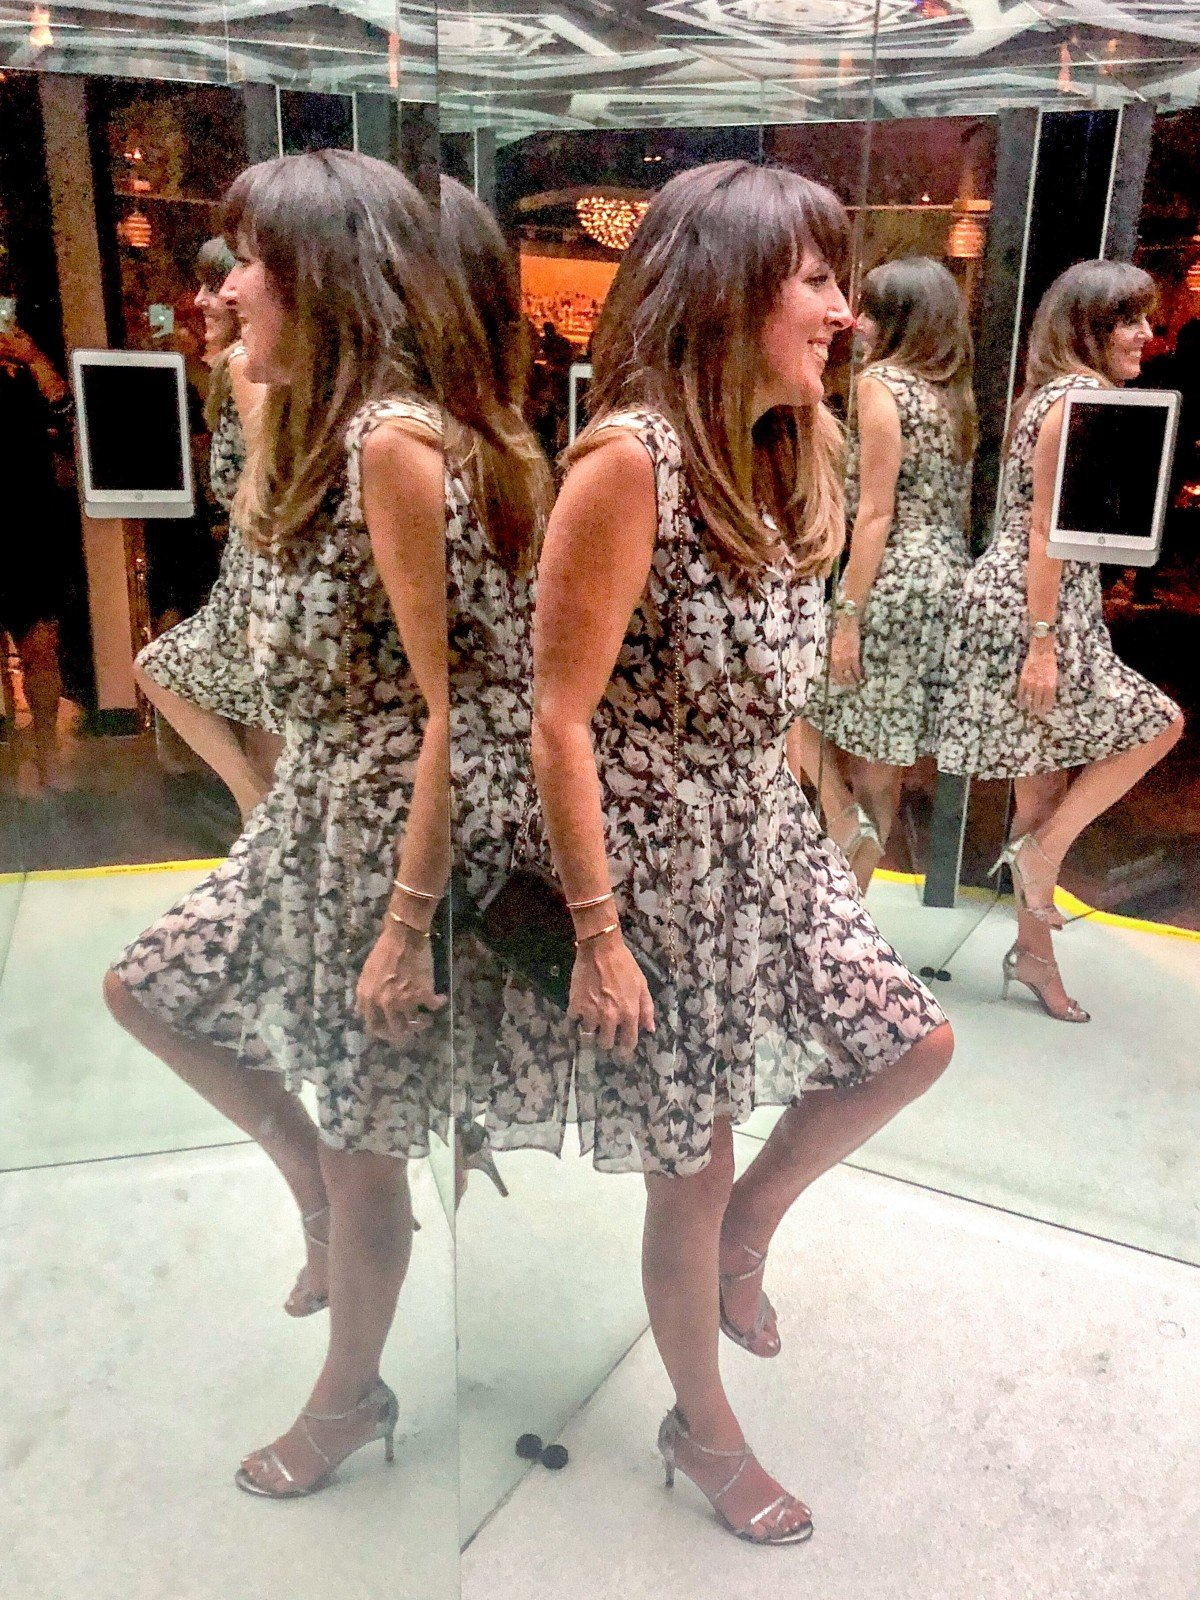 All Saints dress in mirrored room